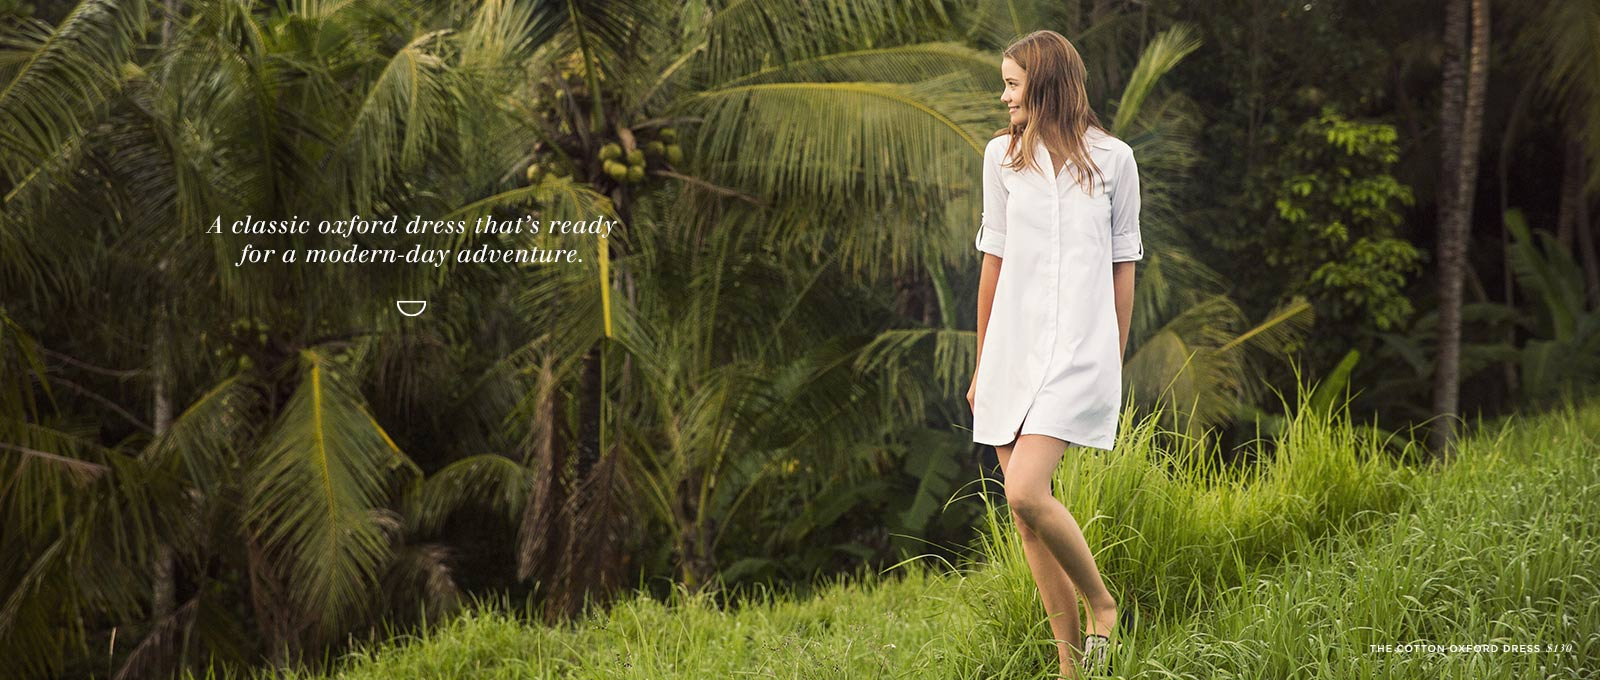 100% Cotton Oxford Dress | Cuyana Shop